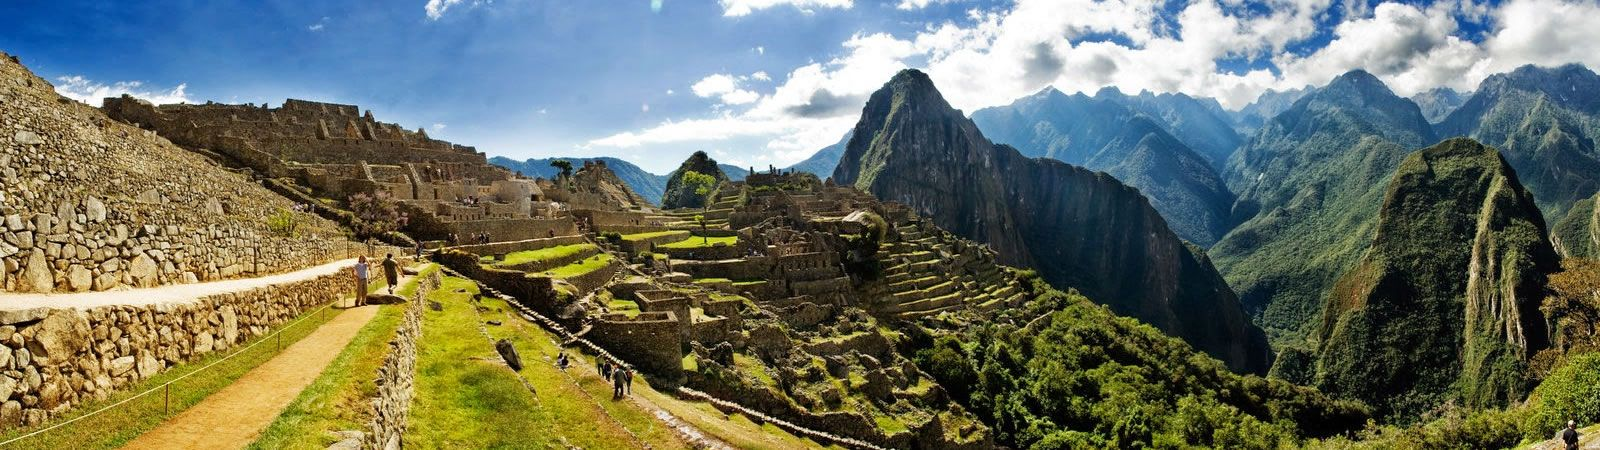 Machu Picchu Luxury Tours